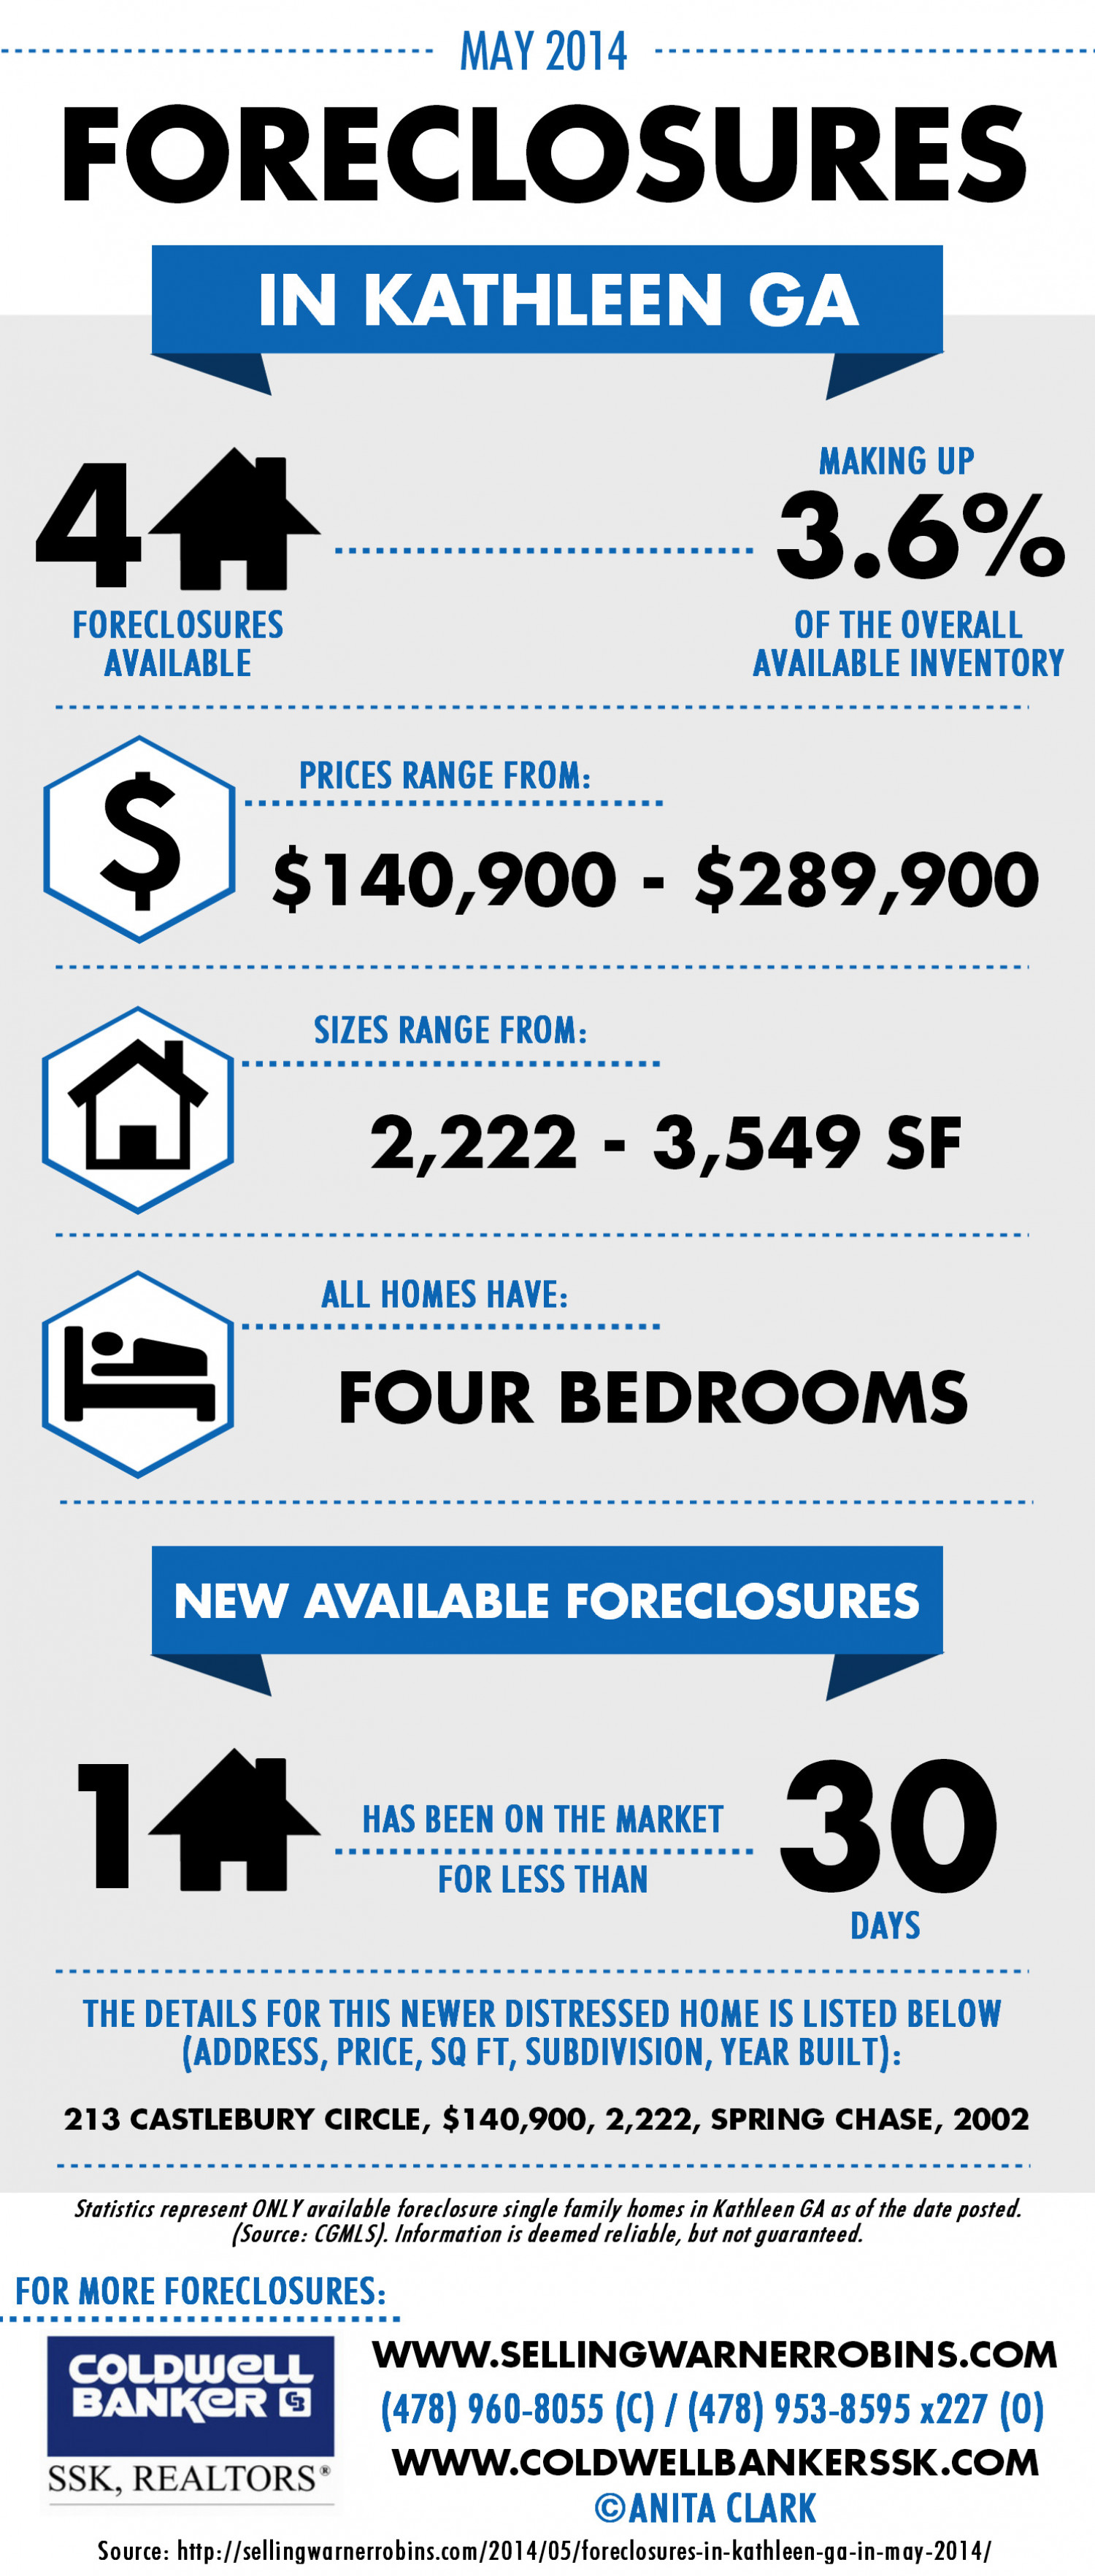 Foreclosures in Kathleen GA for May 2014 Infographic